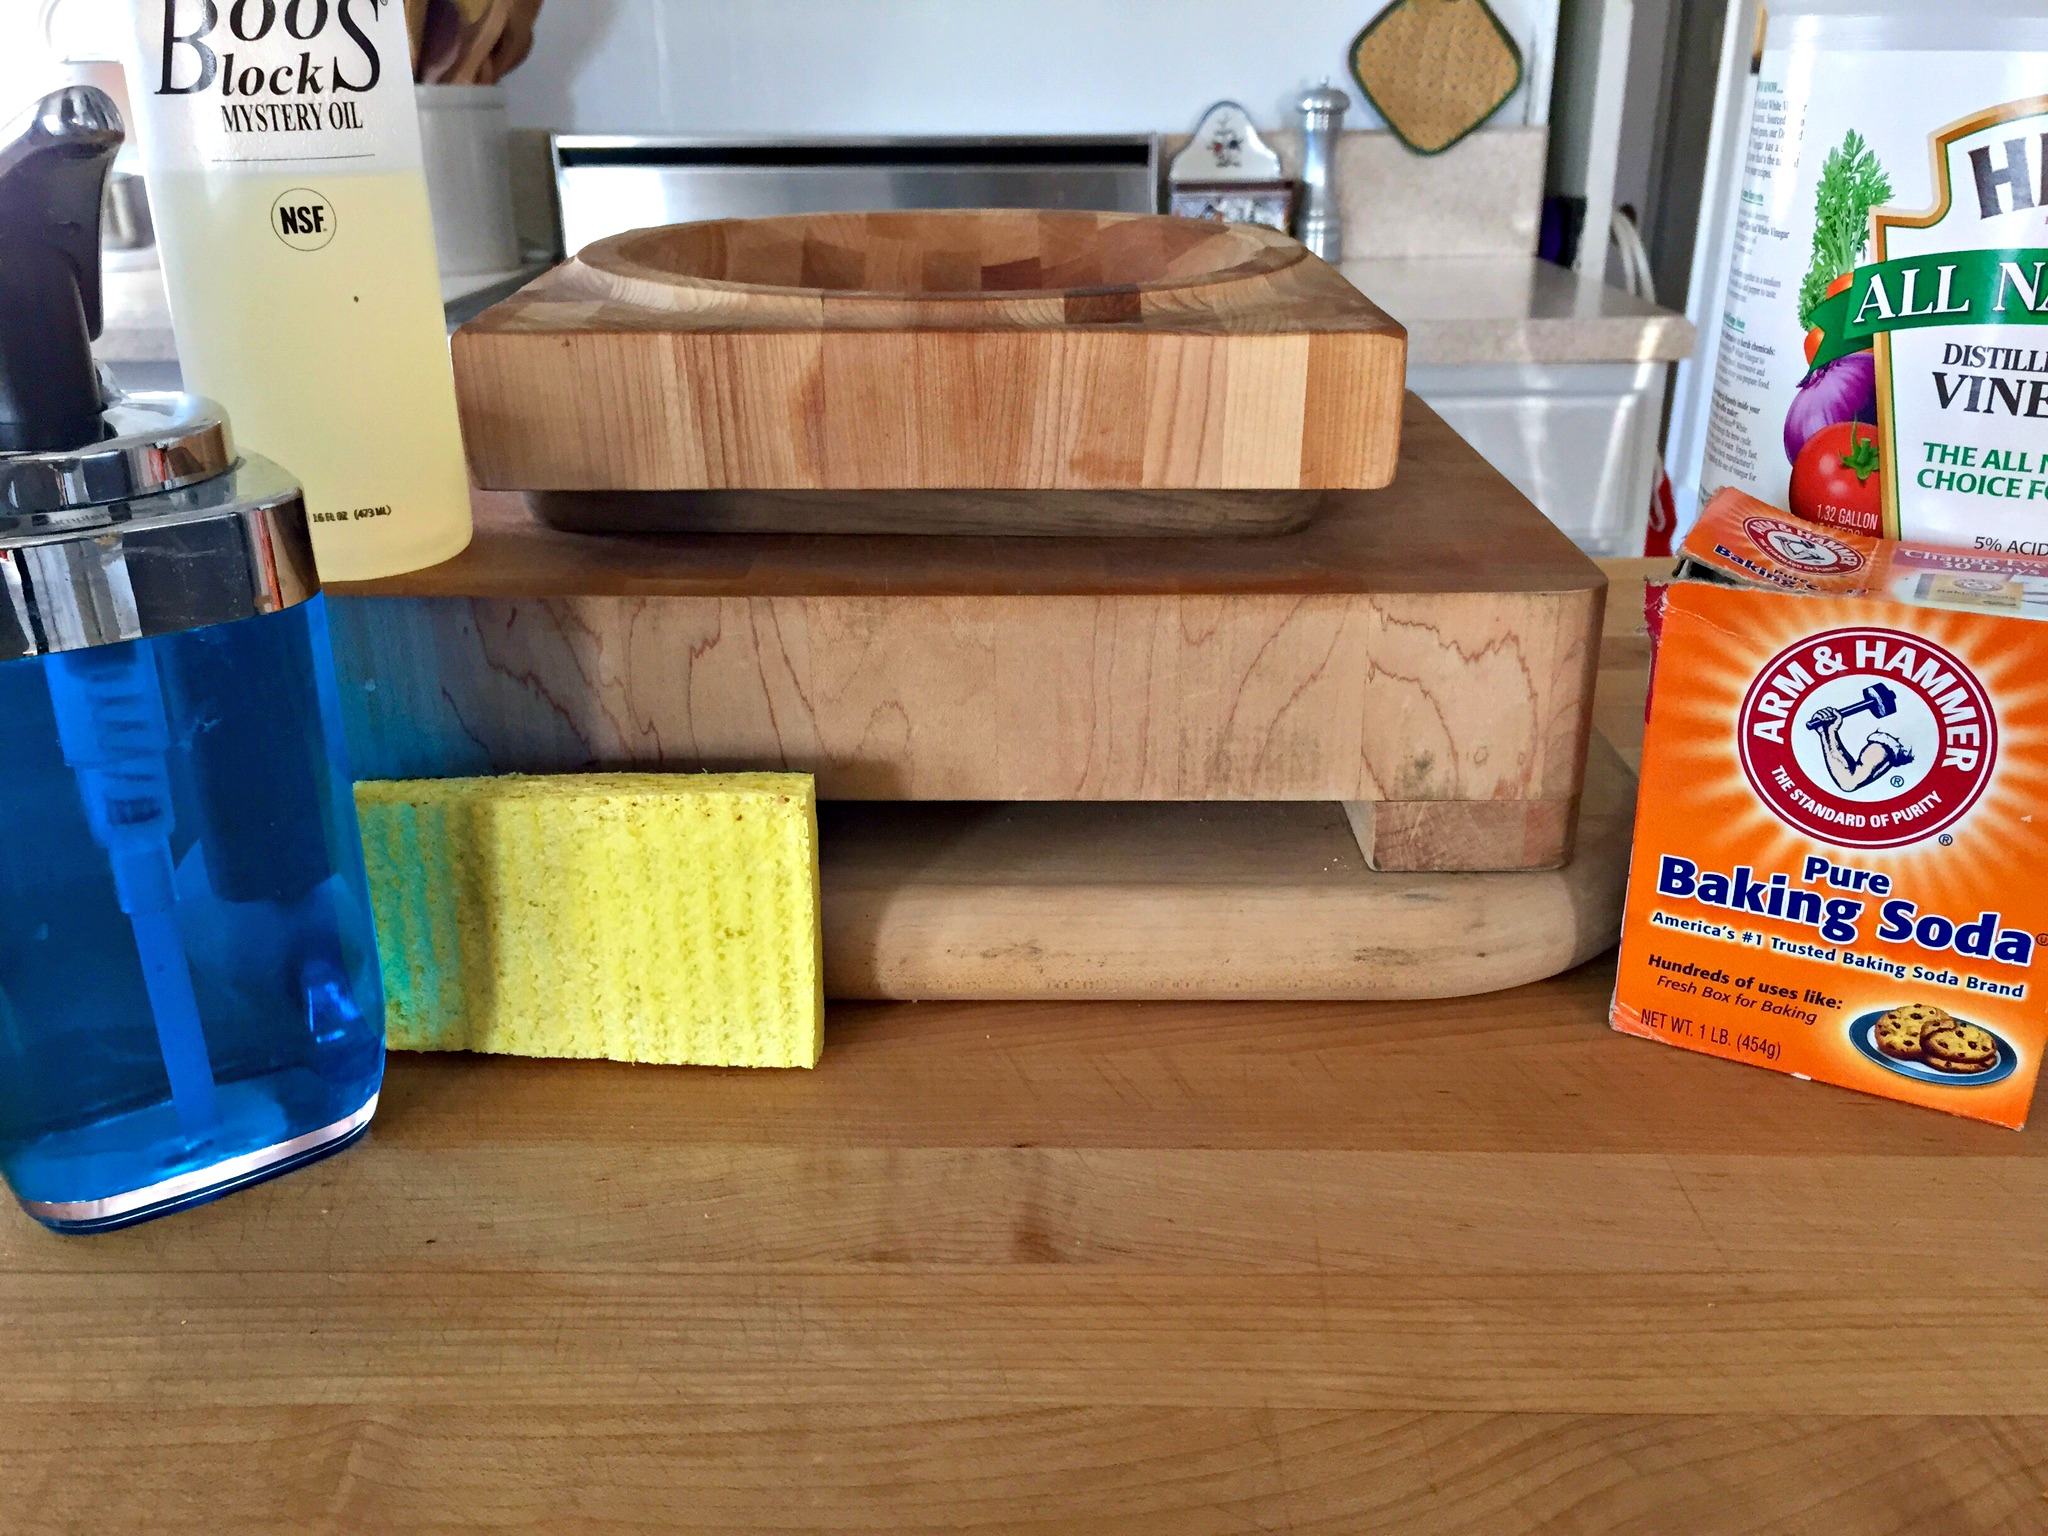 How To Care For Your Butcher Blocks & Cutting Boards